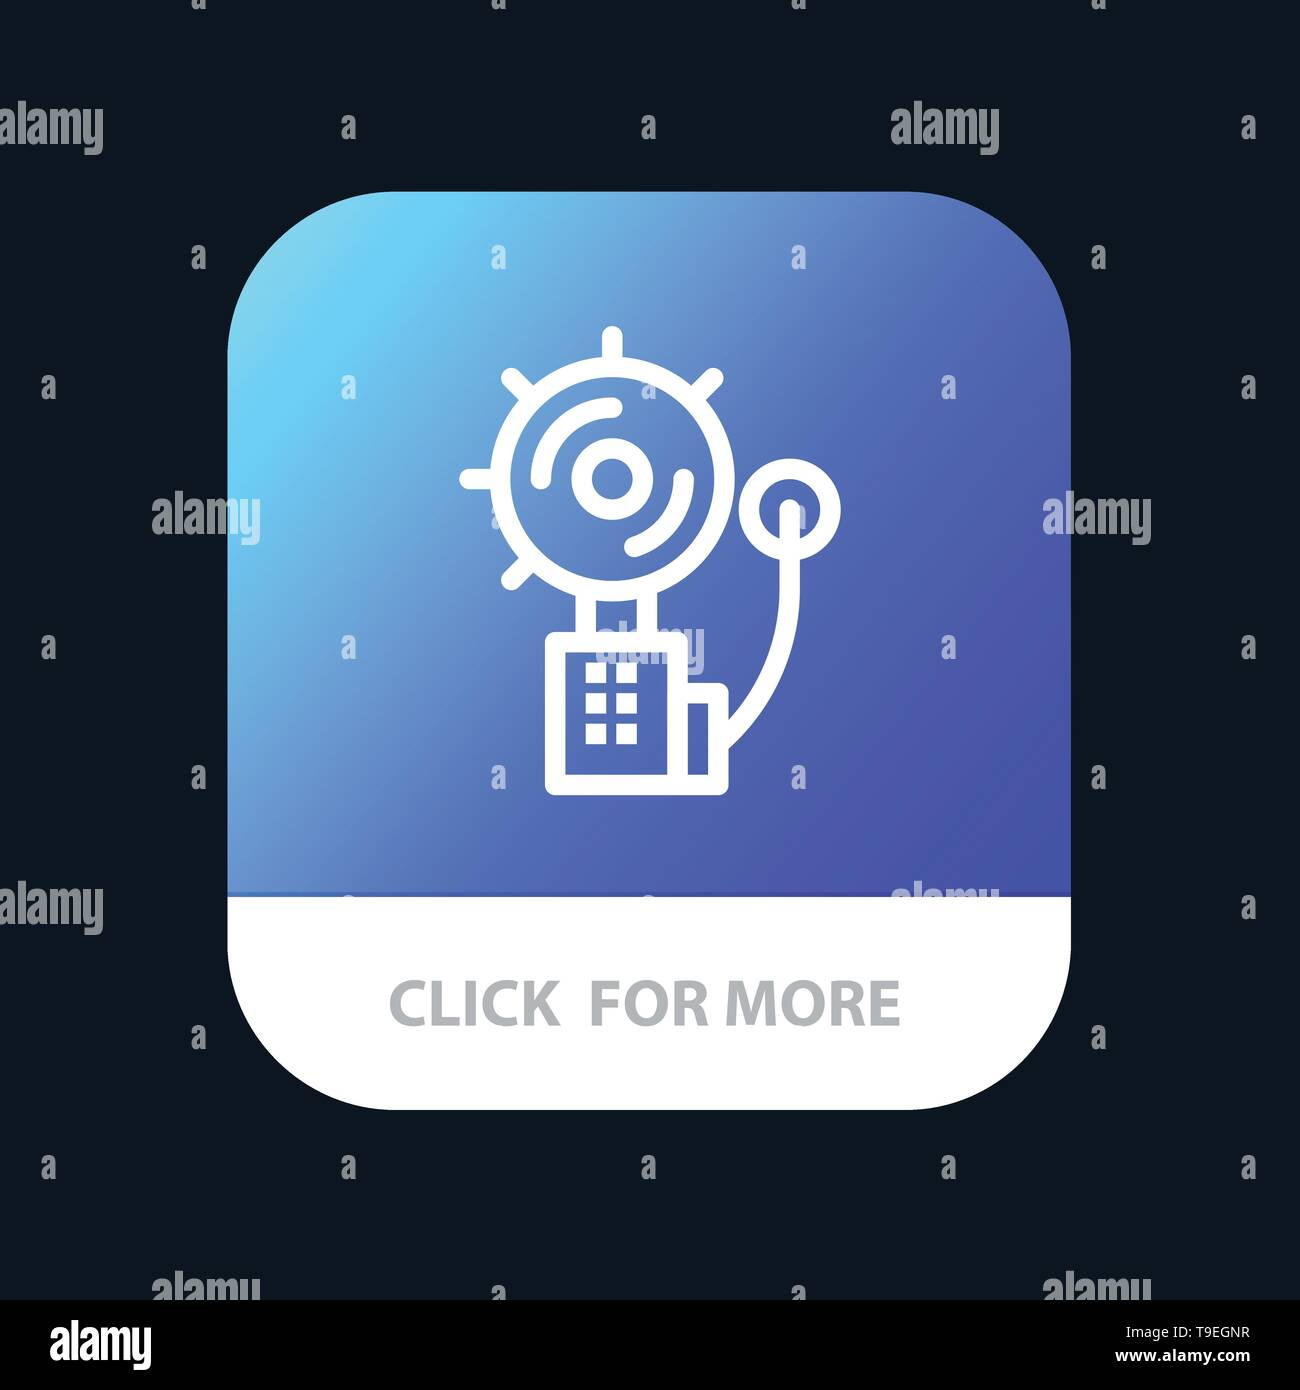 Alarm, Alert, Bell, Fire, Intruder Mobile App Button. Android and IOS Line Version - Stock Image